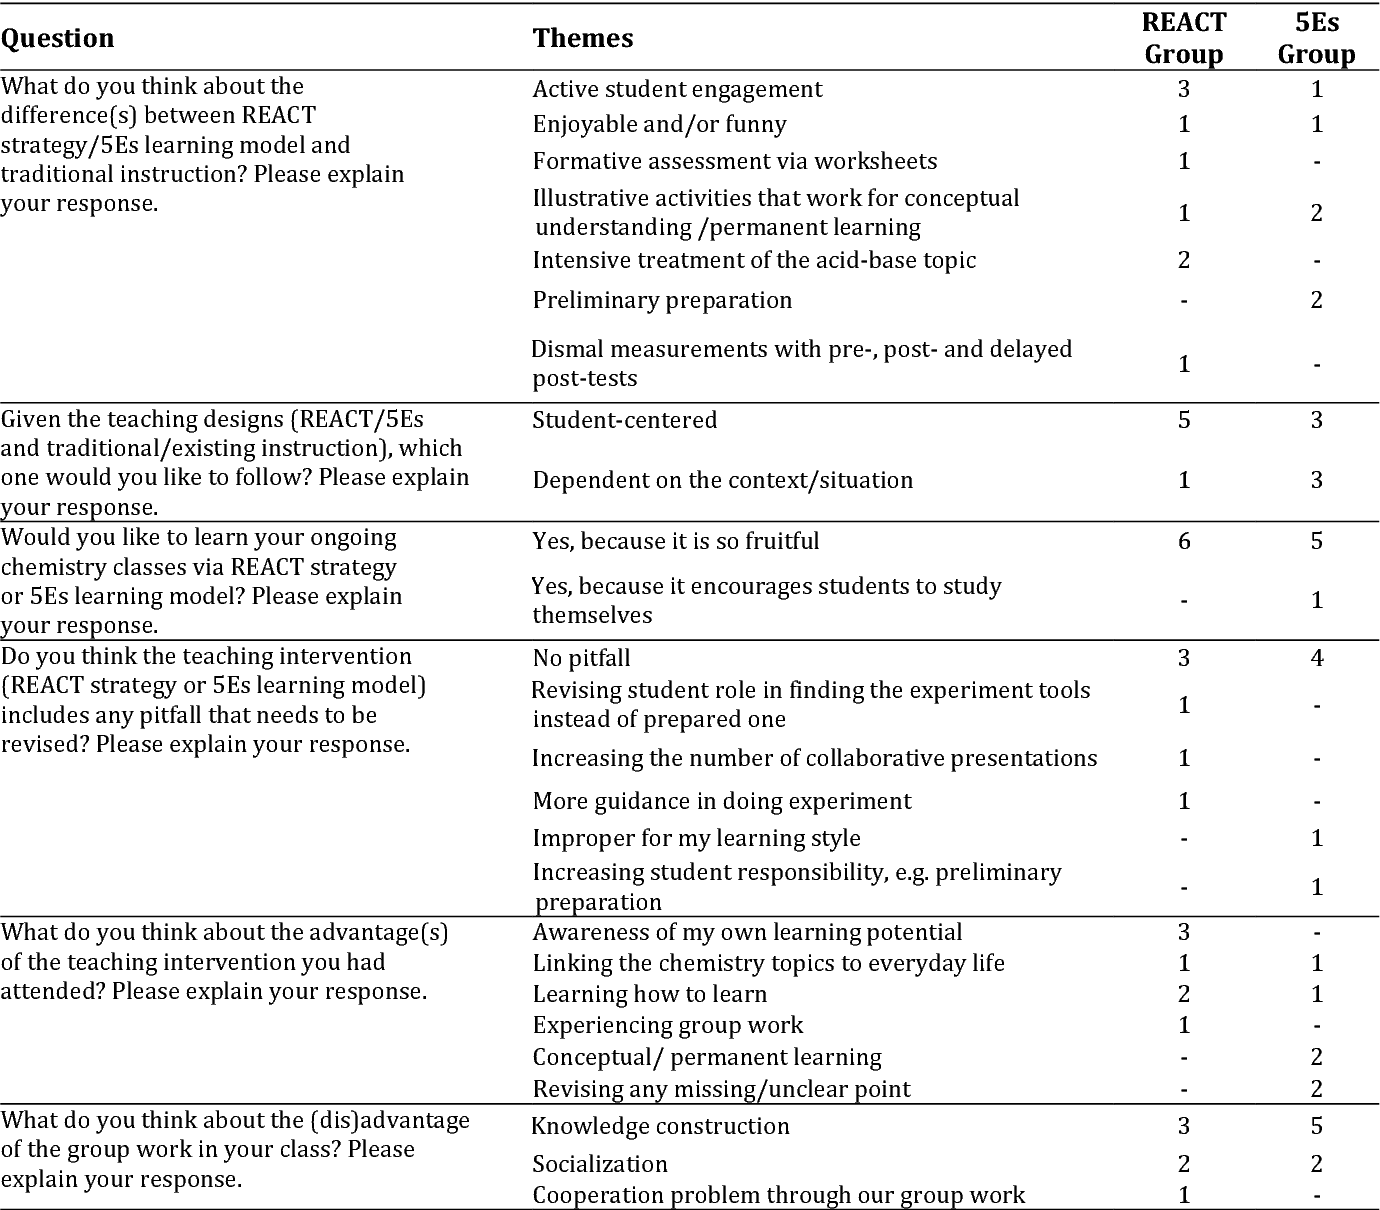 Table 8 from A Comparison of Different Teaching Designs of